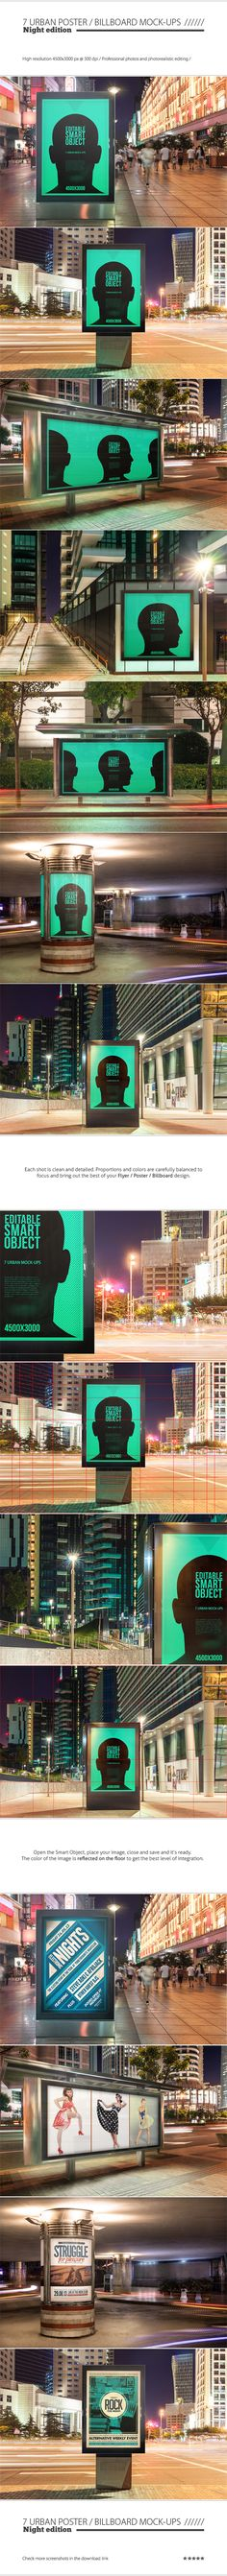 Save time and put the spark on your flyer / poster / billboard design with this night urban mock-ups set. Professional photos and photorealistic editing.